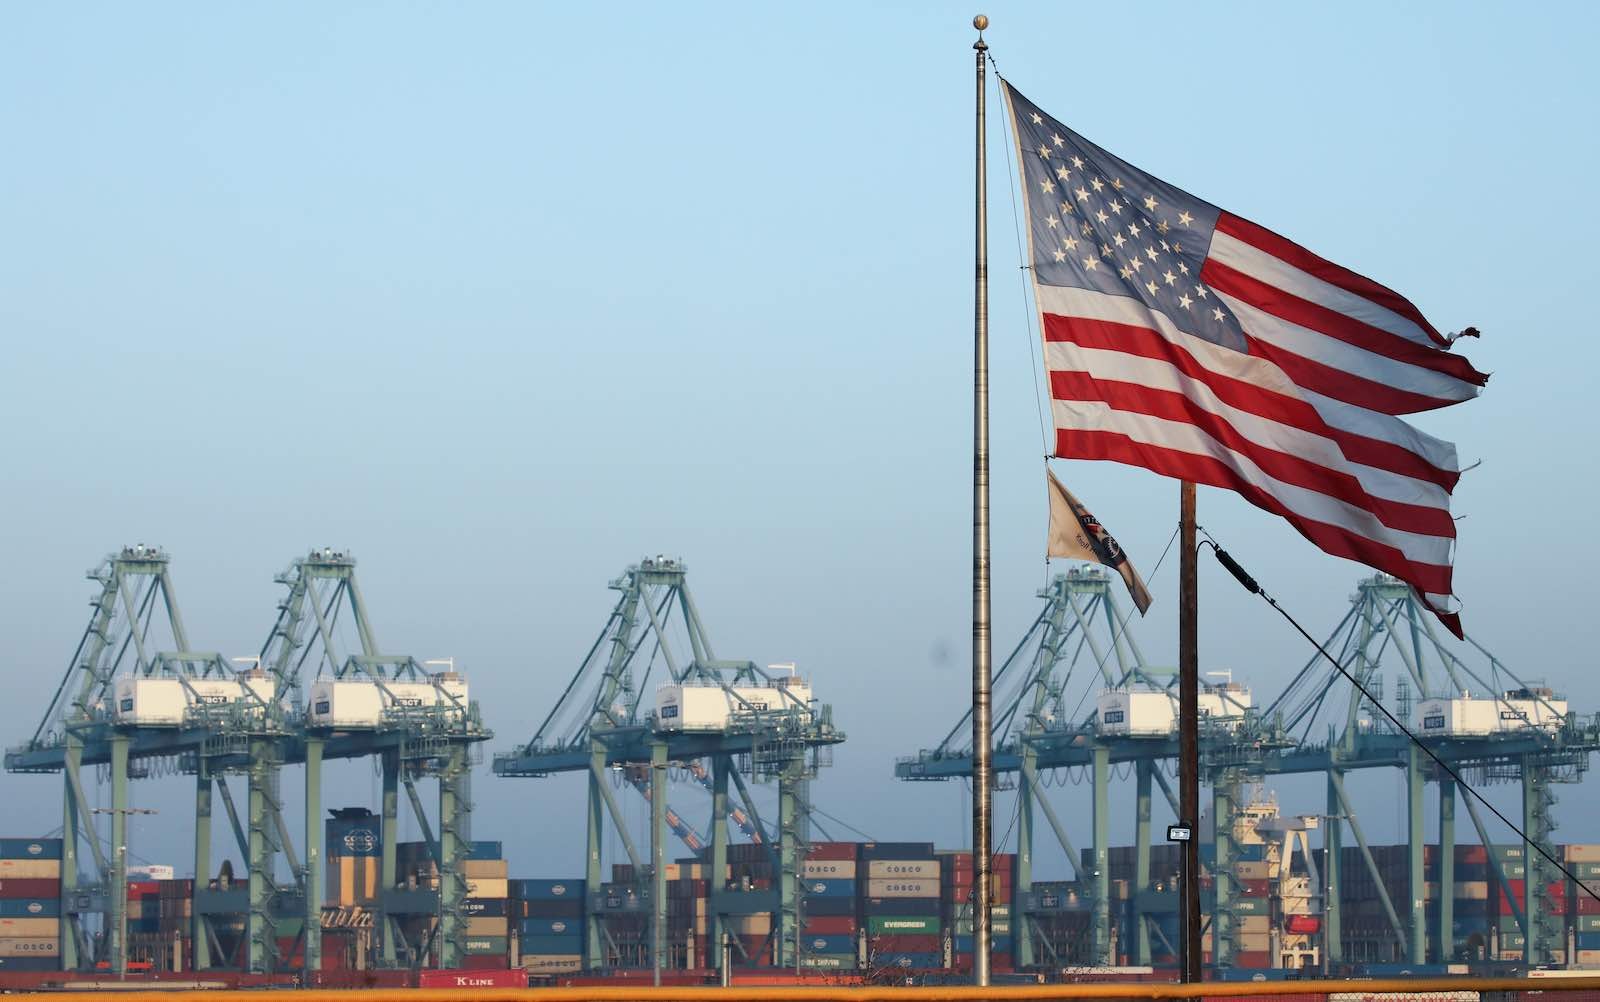 Despite a year of trade policy turbulence, high tariffs, and loud denunciations, the US trade deficit is essentially unchanged (Photo: Mario Tama/Getty Images)